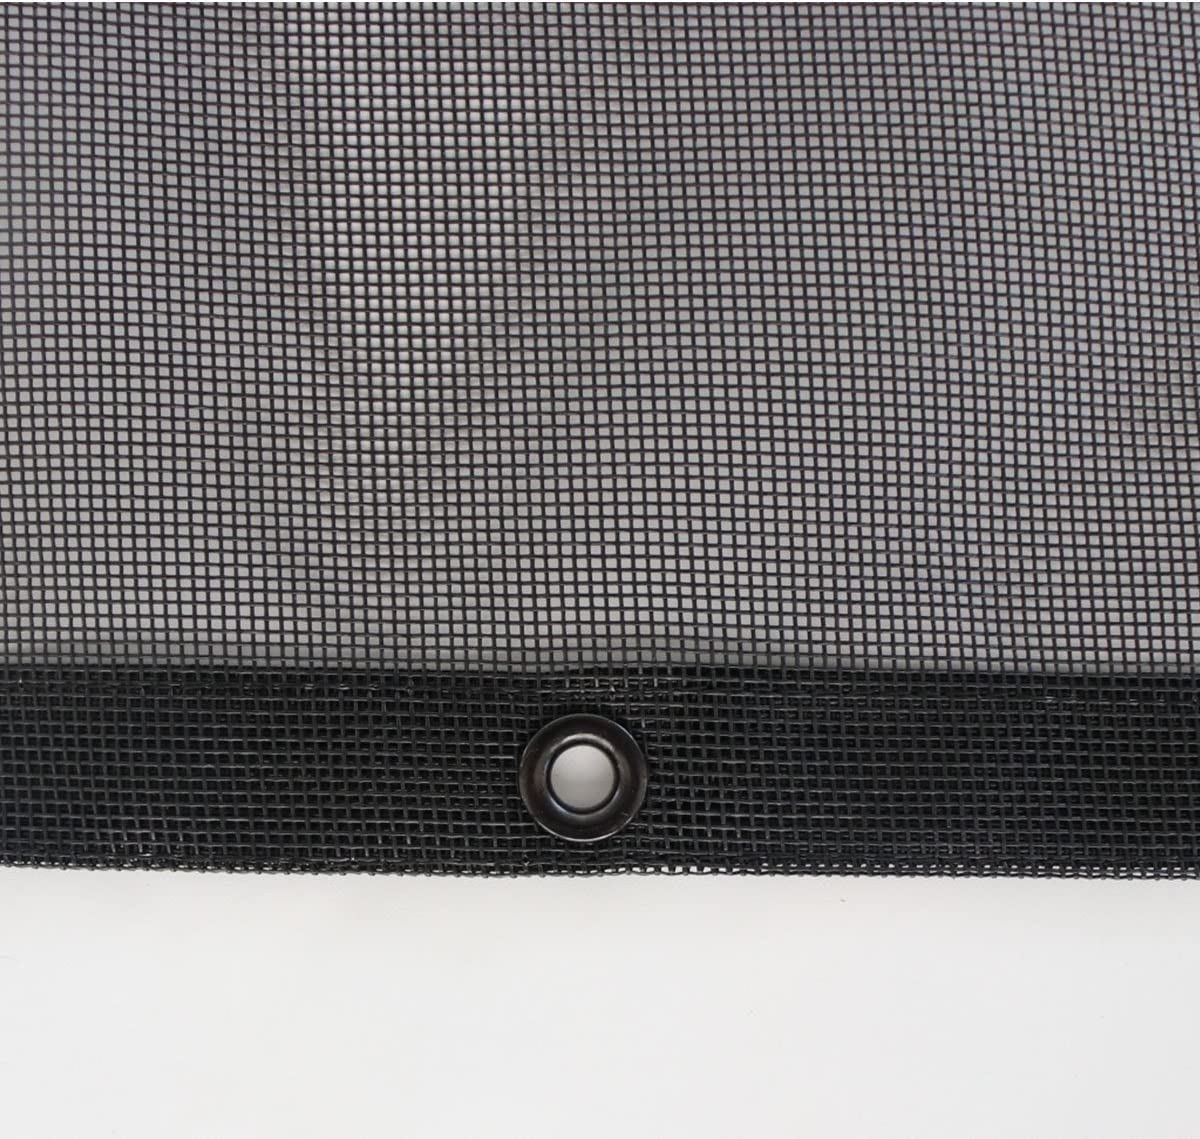 3 Years Limited Warranty Tentproinc Truck Mesh Tarp 9 X 16 No Rust Thicker Brass Grommets Black Heavy Duty Cover Reinforced Double Needle Stitch Webbing Ripping and Tearing Stop